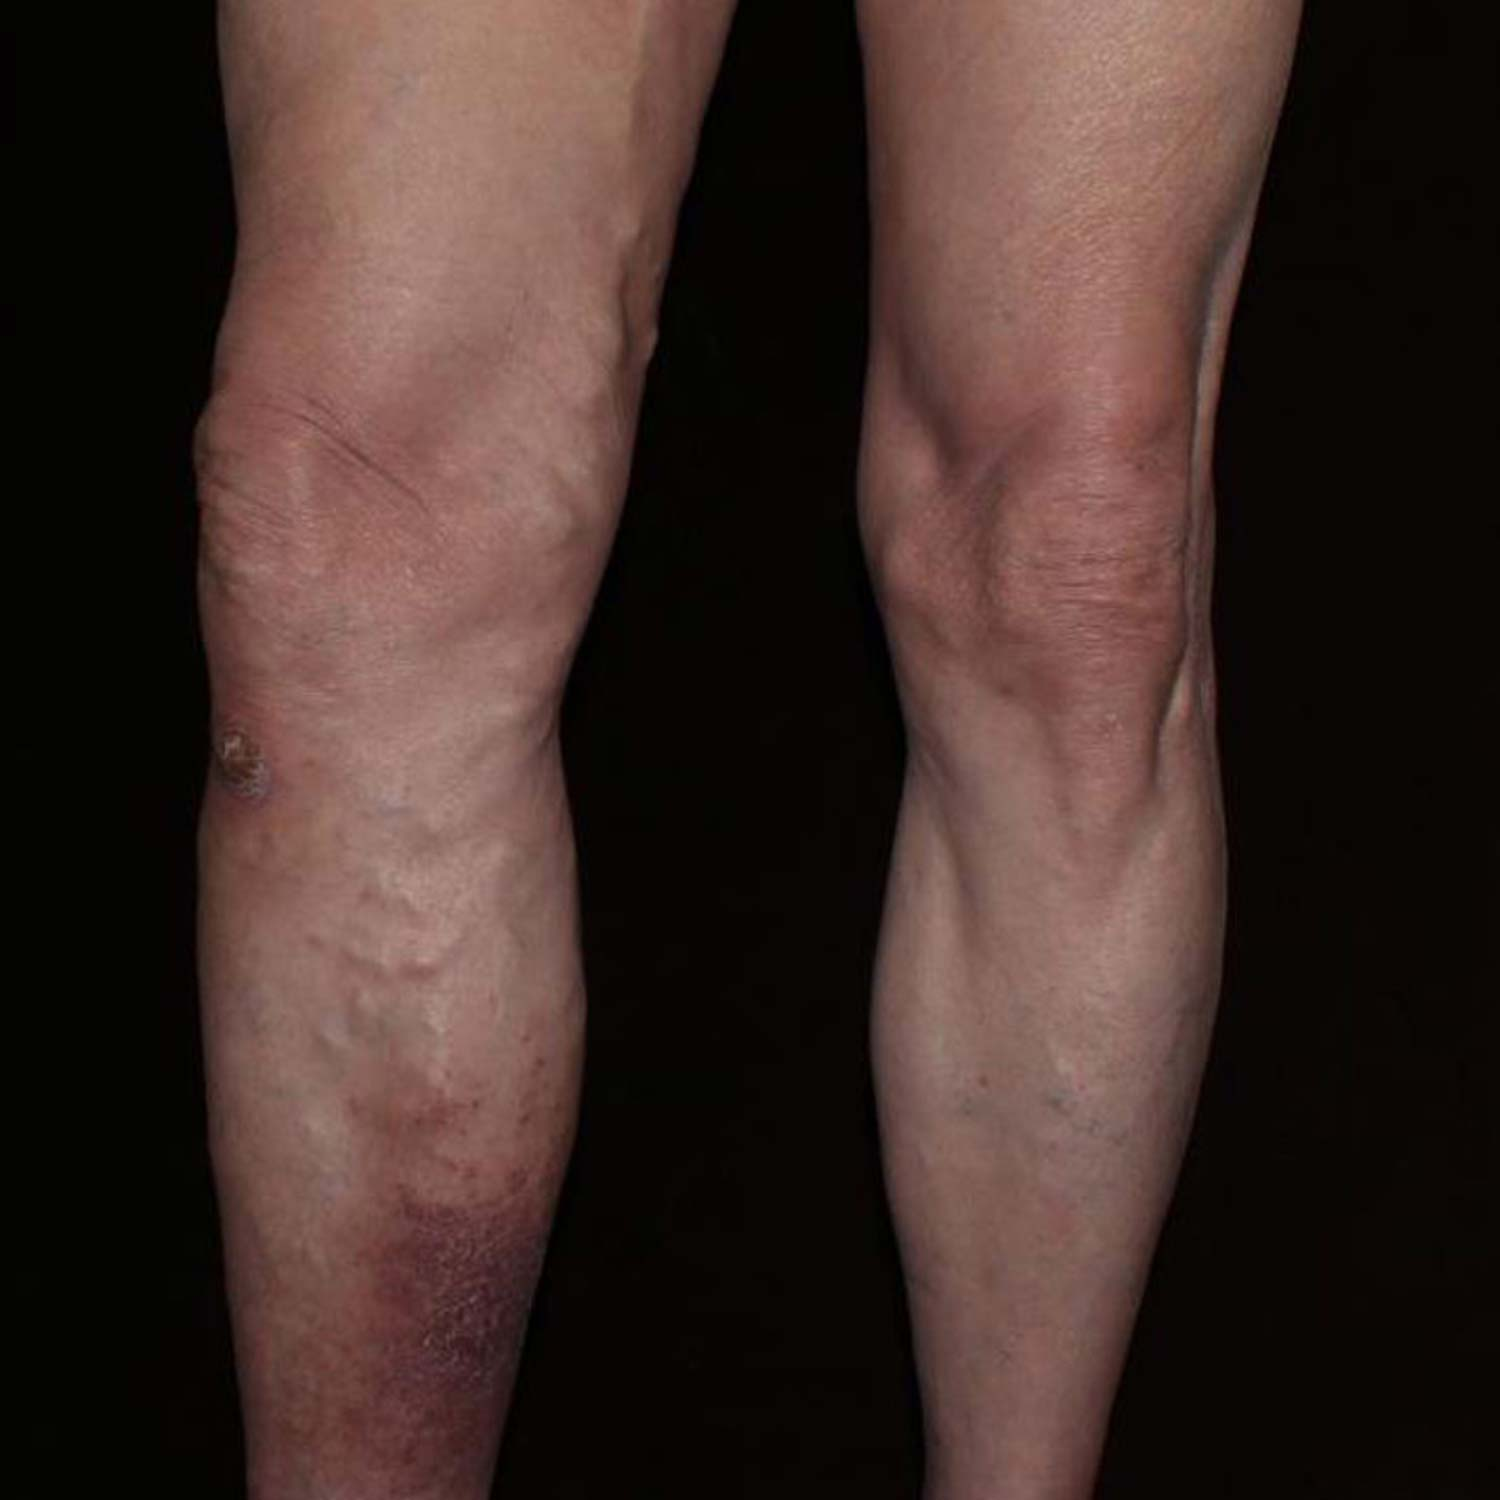 Varicose Vein before surgery.